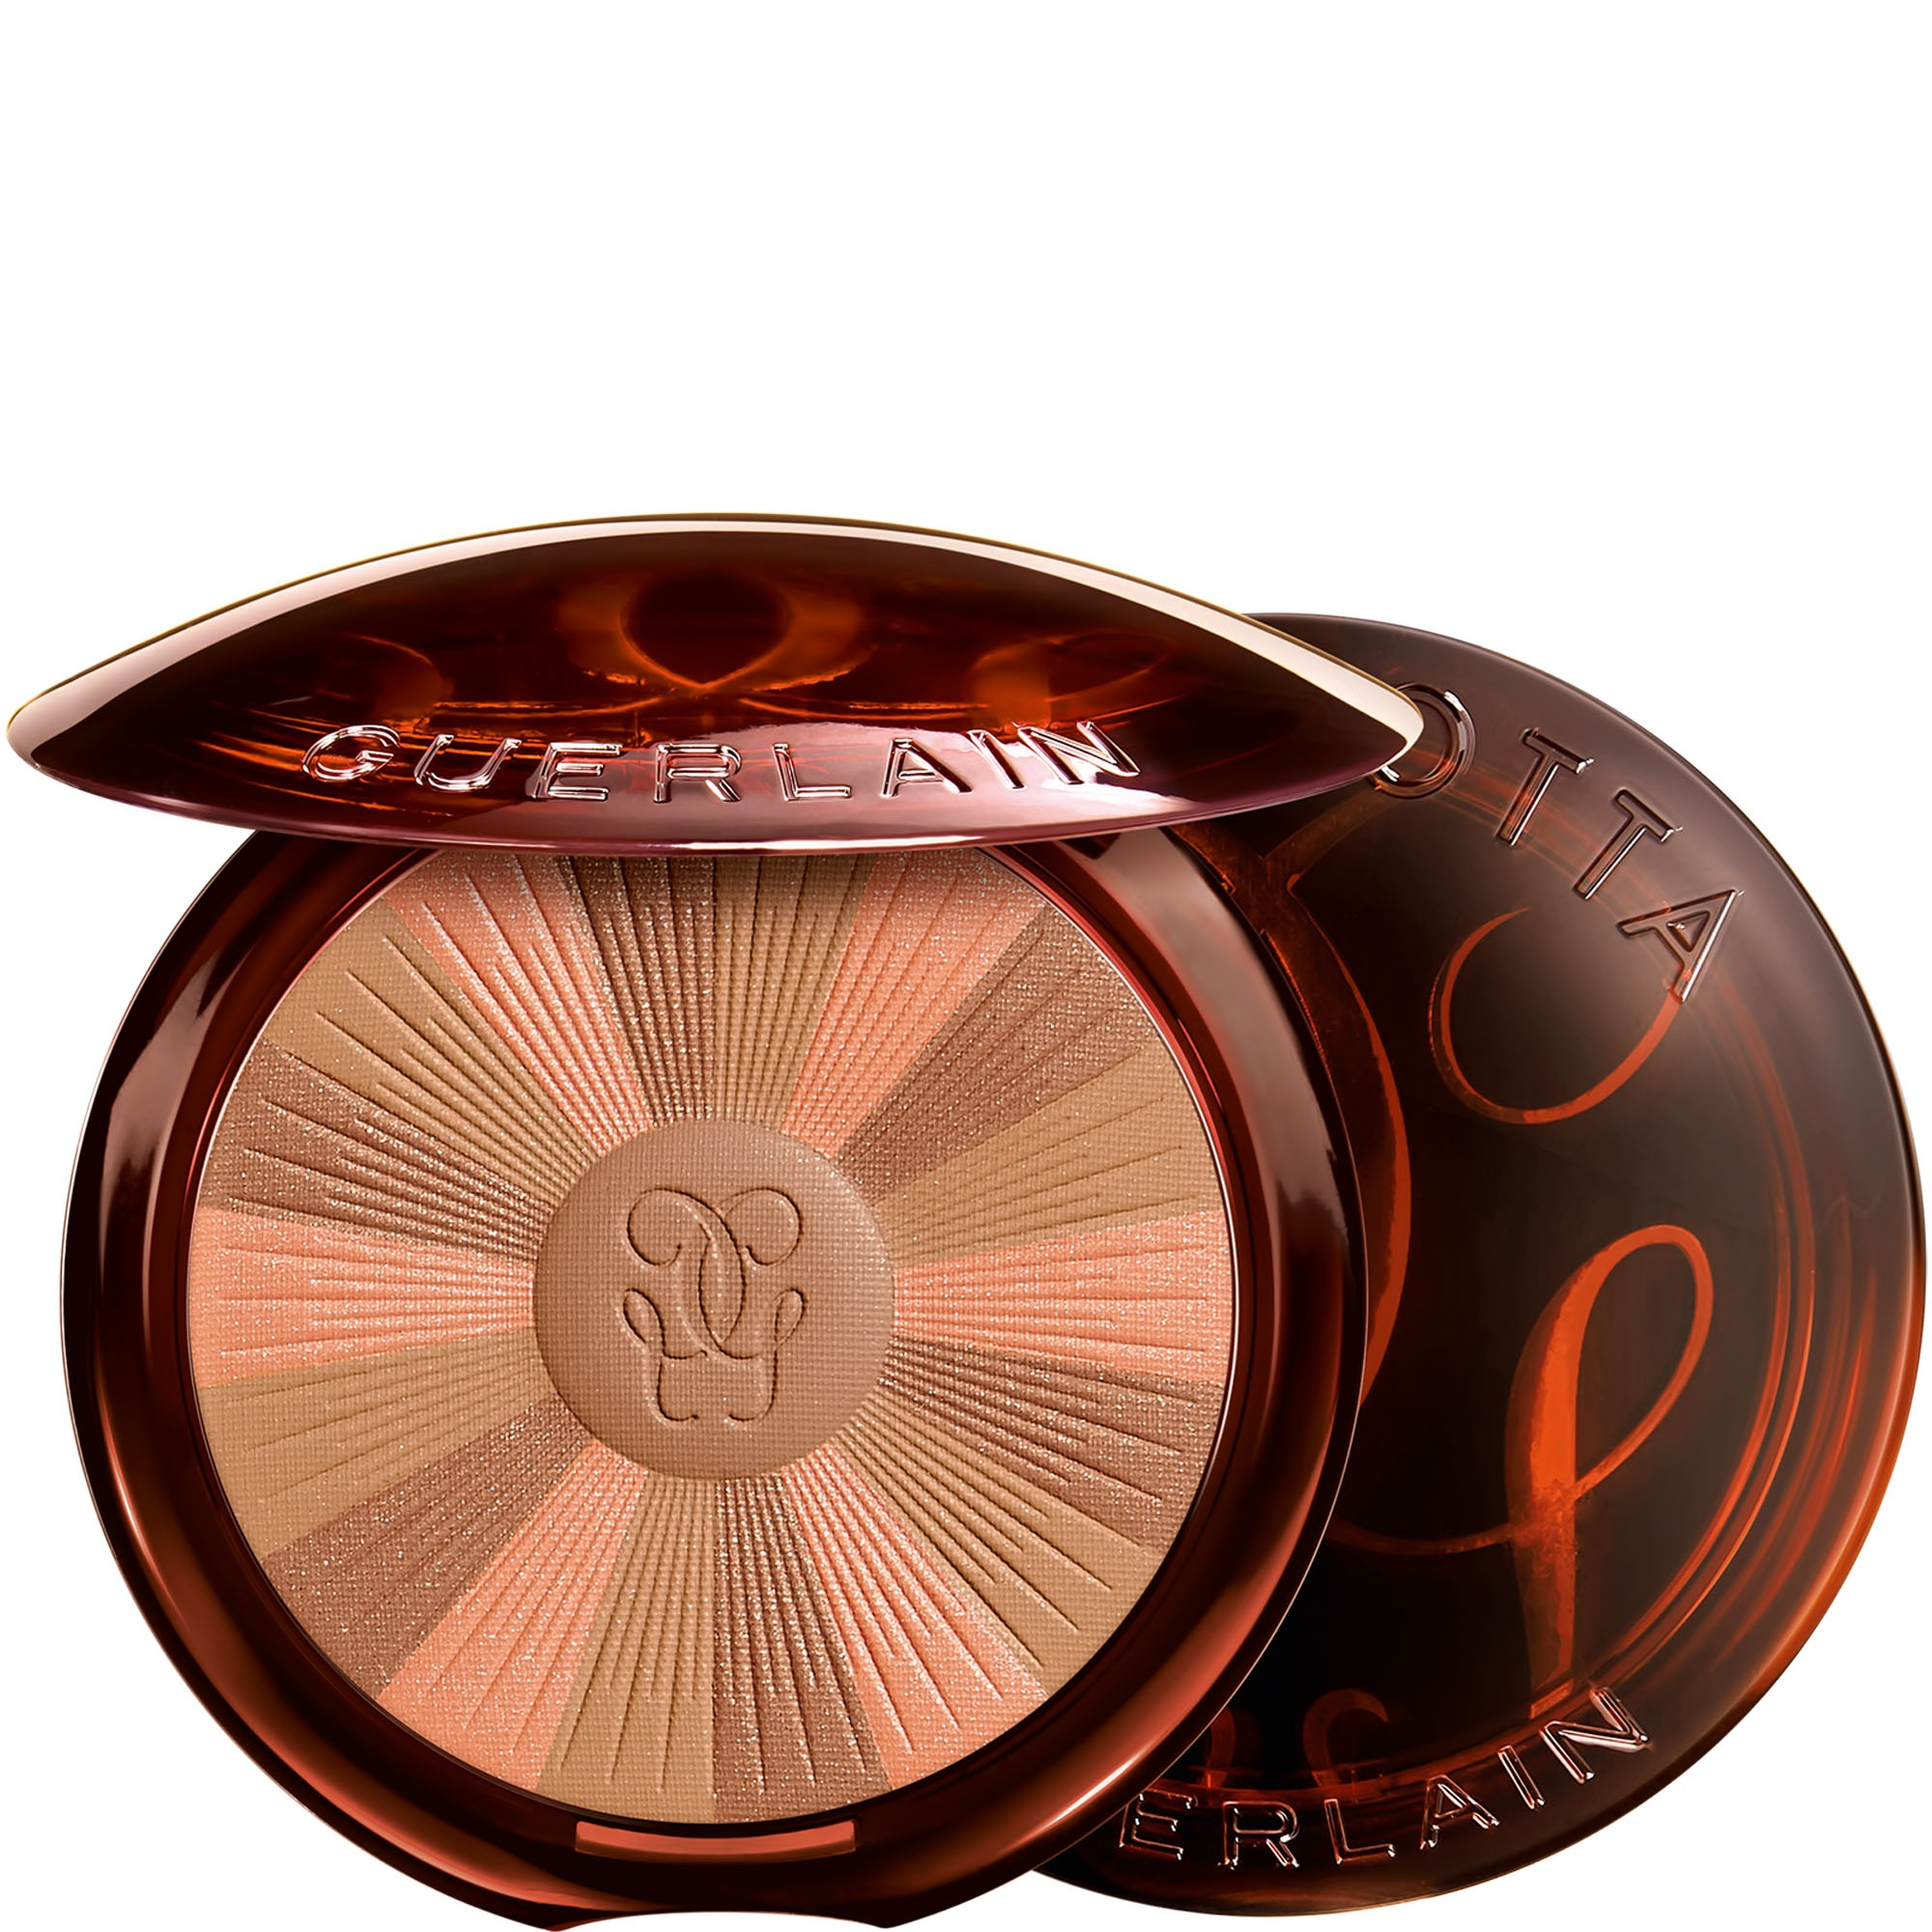 Guerlain Terracotta Light The Healthy Glow Vitamin-Radiance Powder